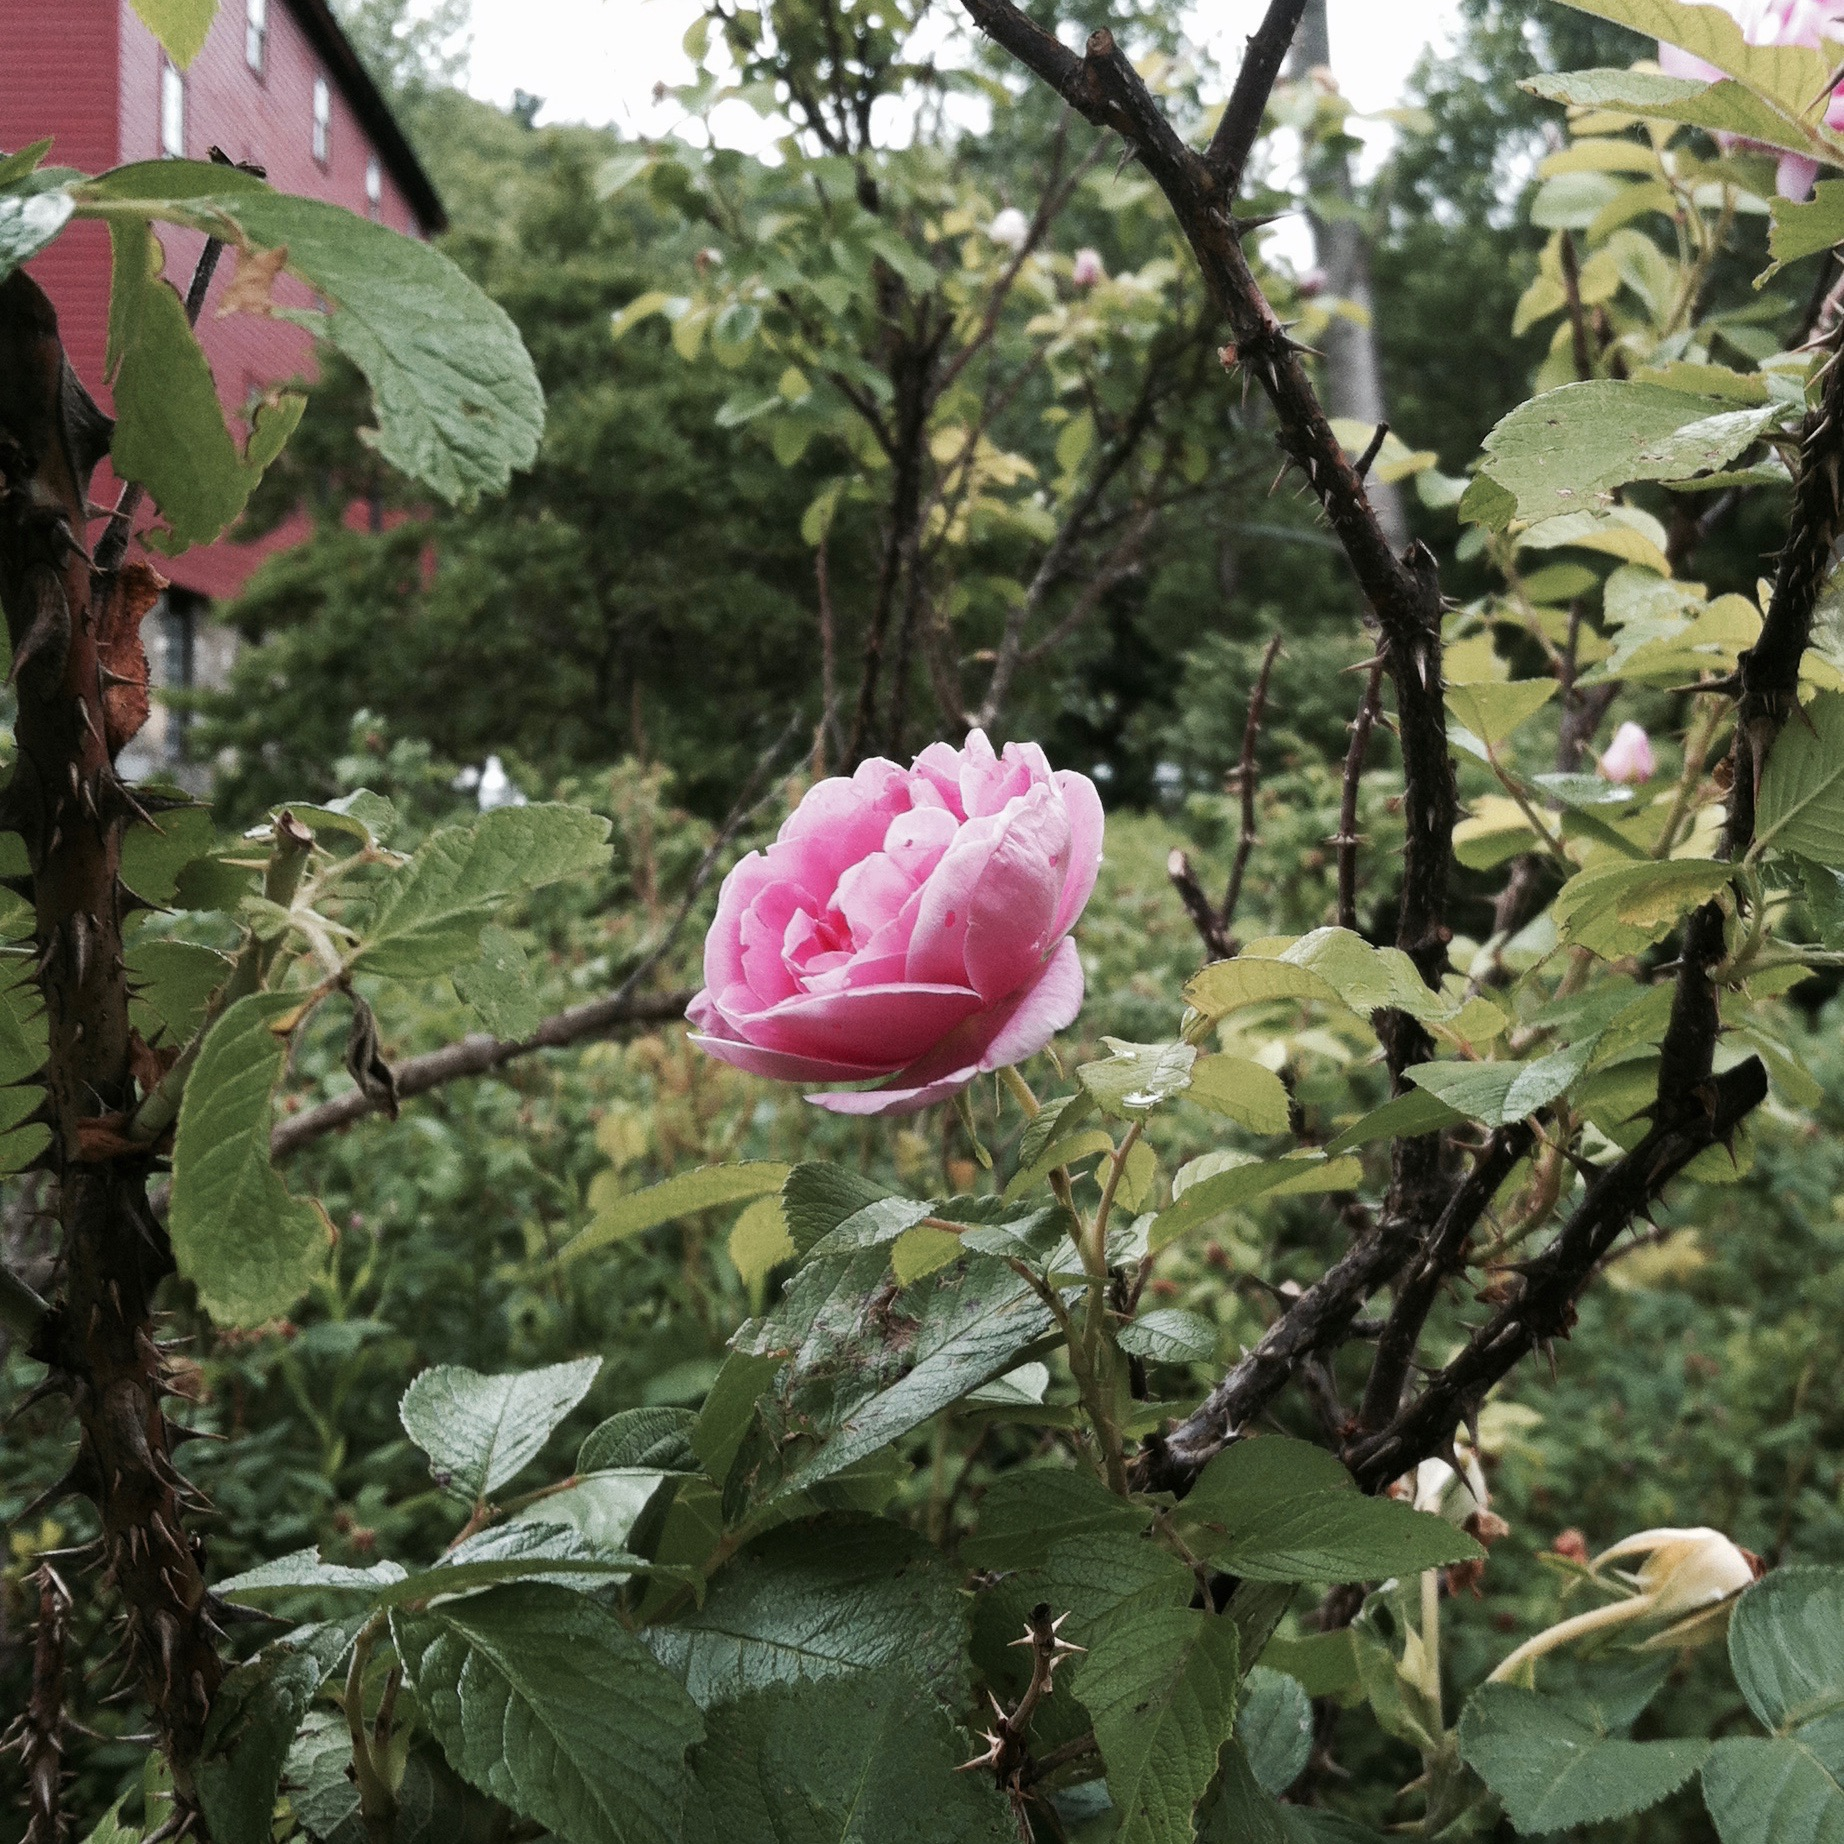 An appropriate reminder of the Season of the Rose Summer School. — N.M-Y. '15